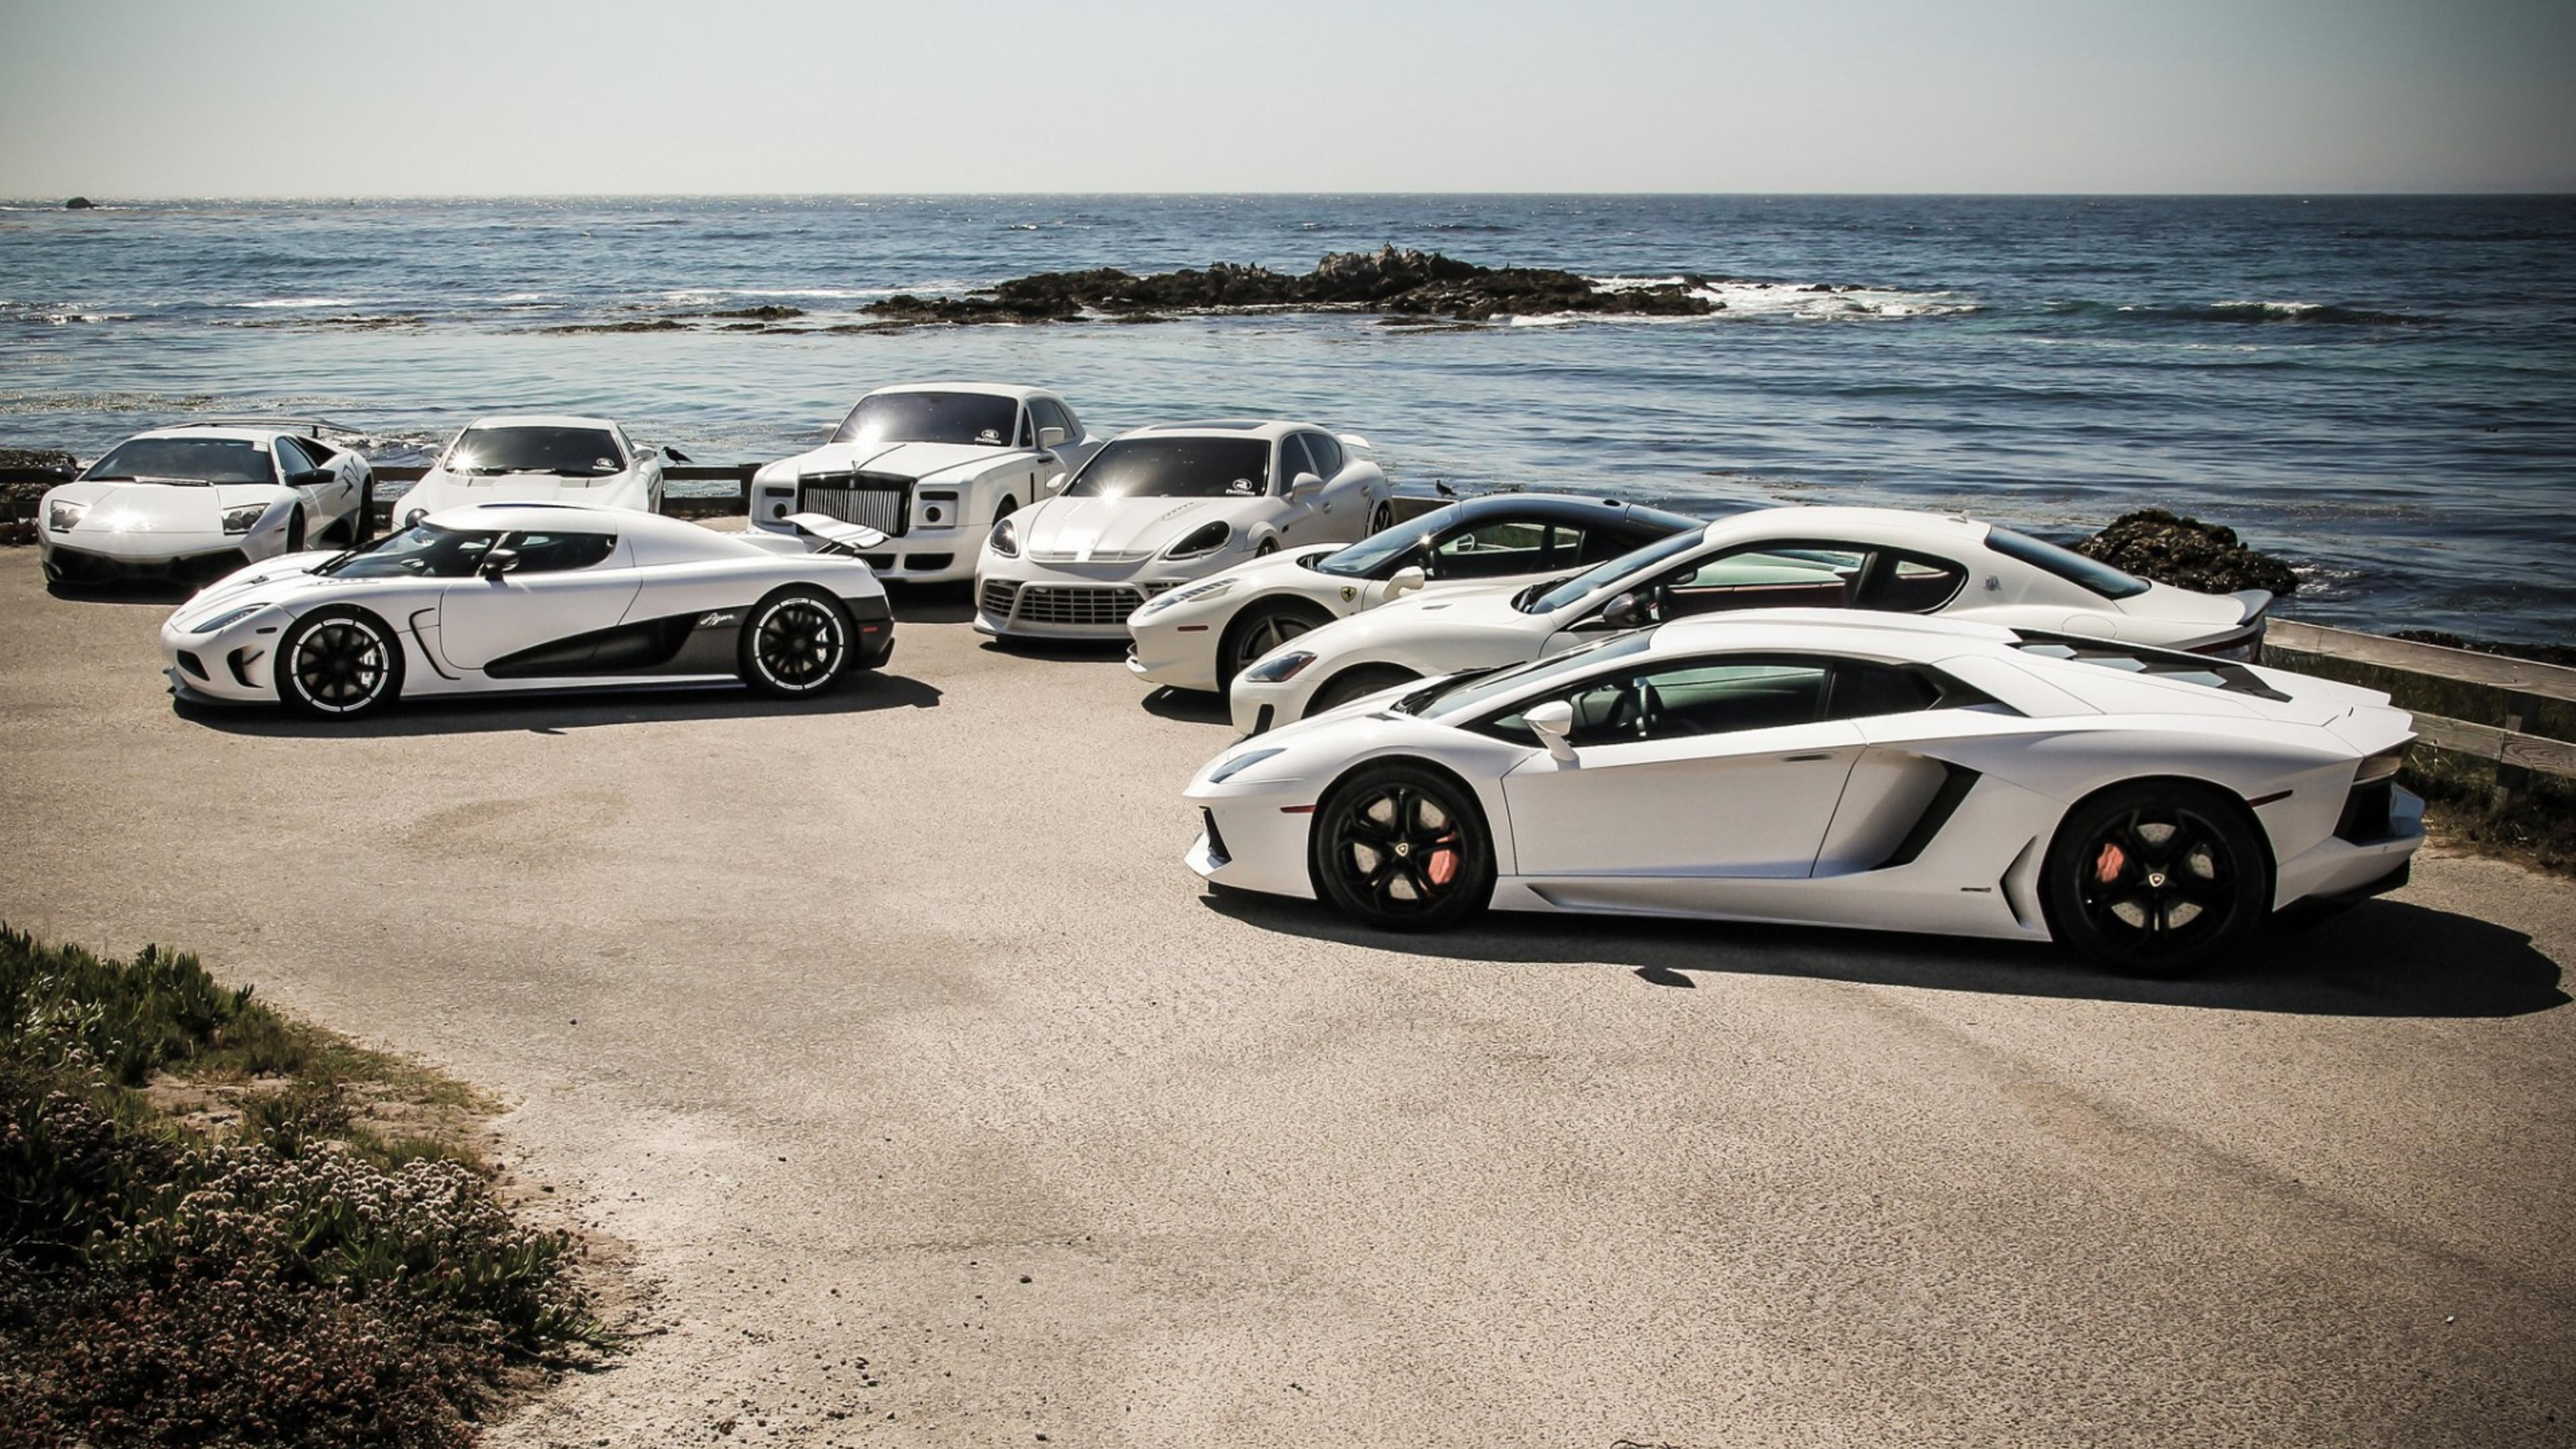 Cars Wallpapers: Collection Of White Supercars Wallpaper Download 3840x2160